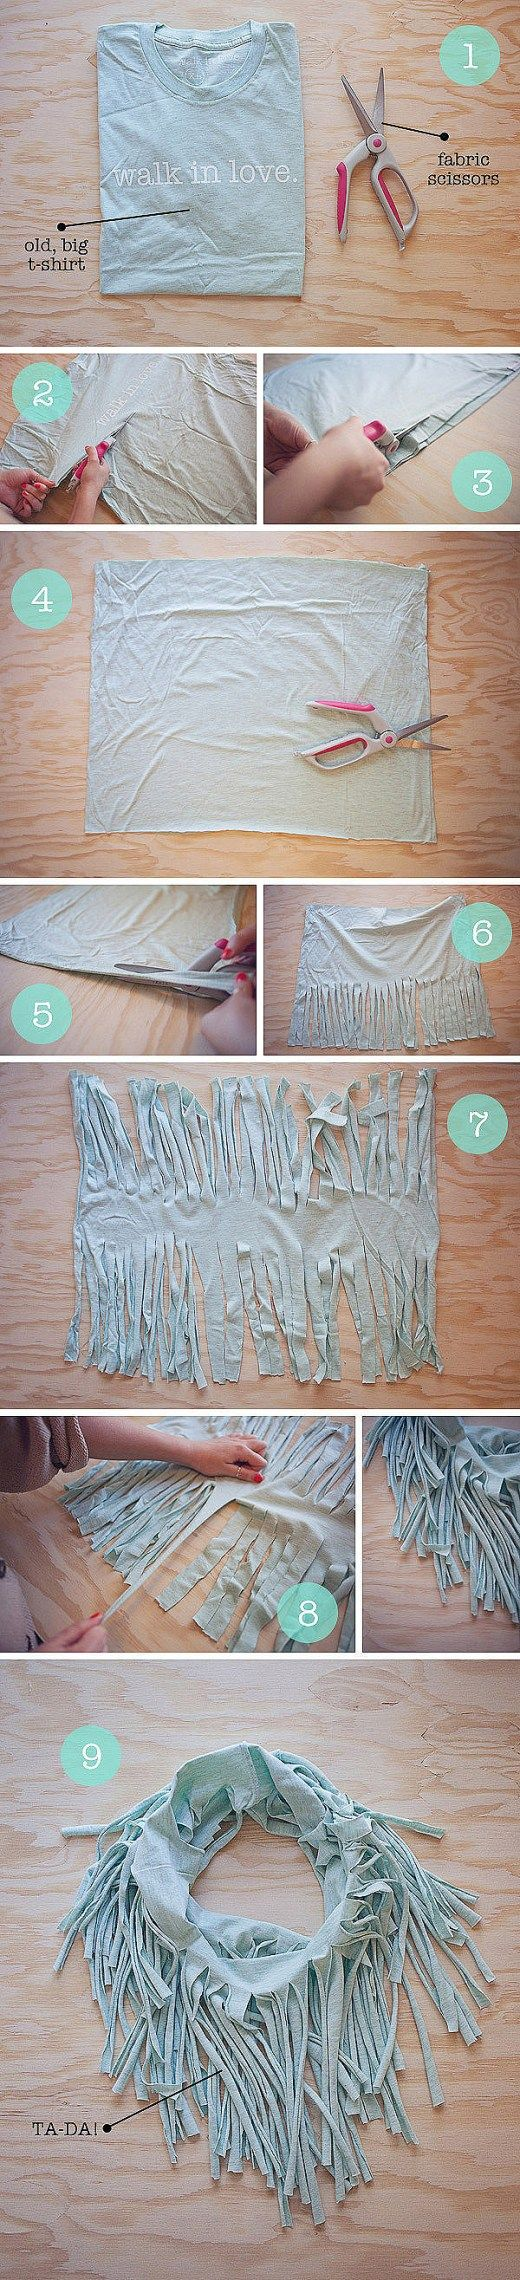 diy reuse of t shirt scarf craft ideas projects